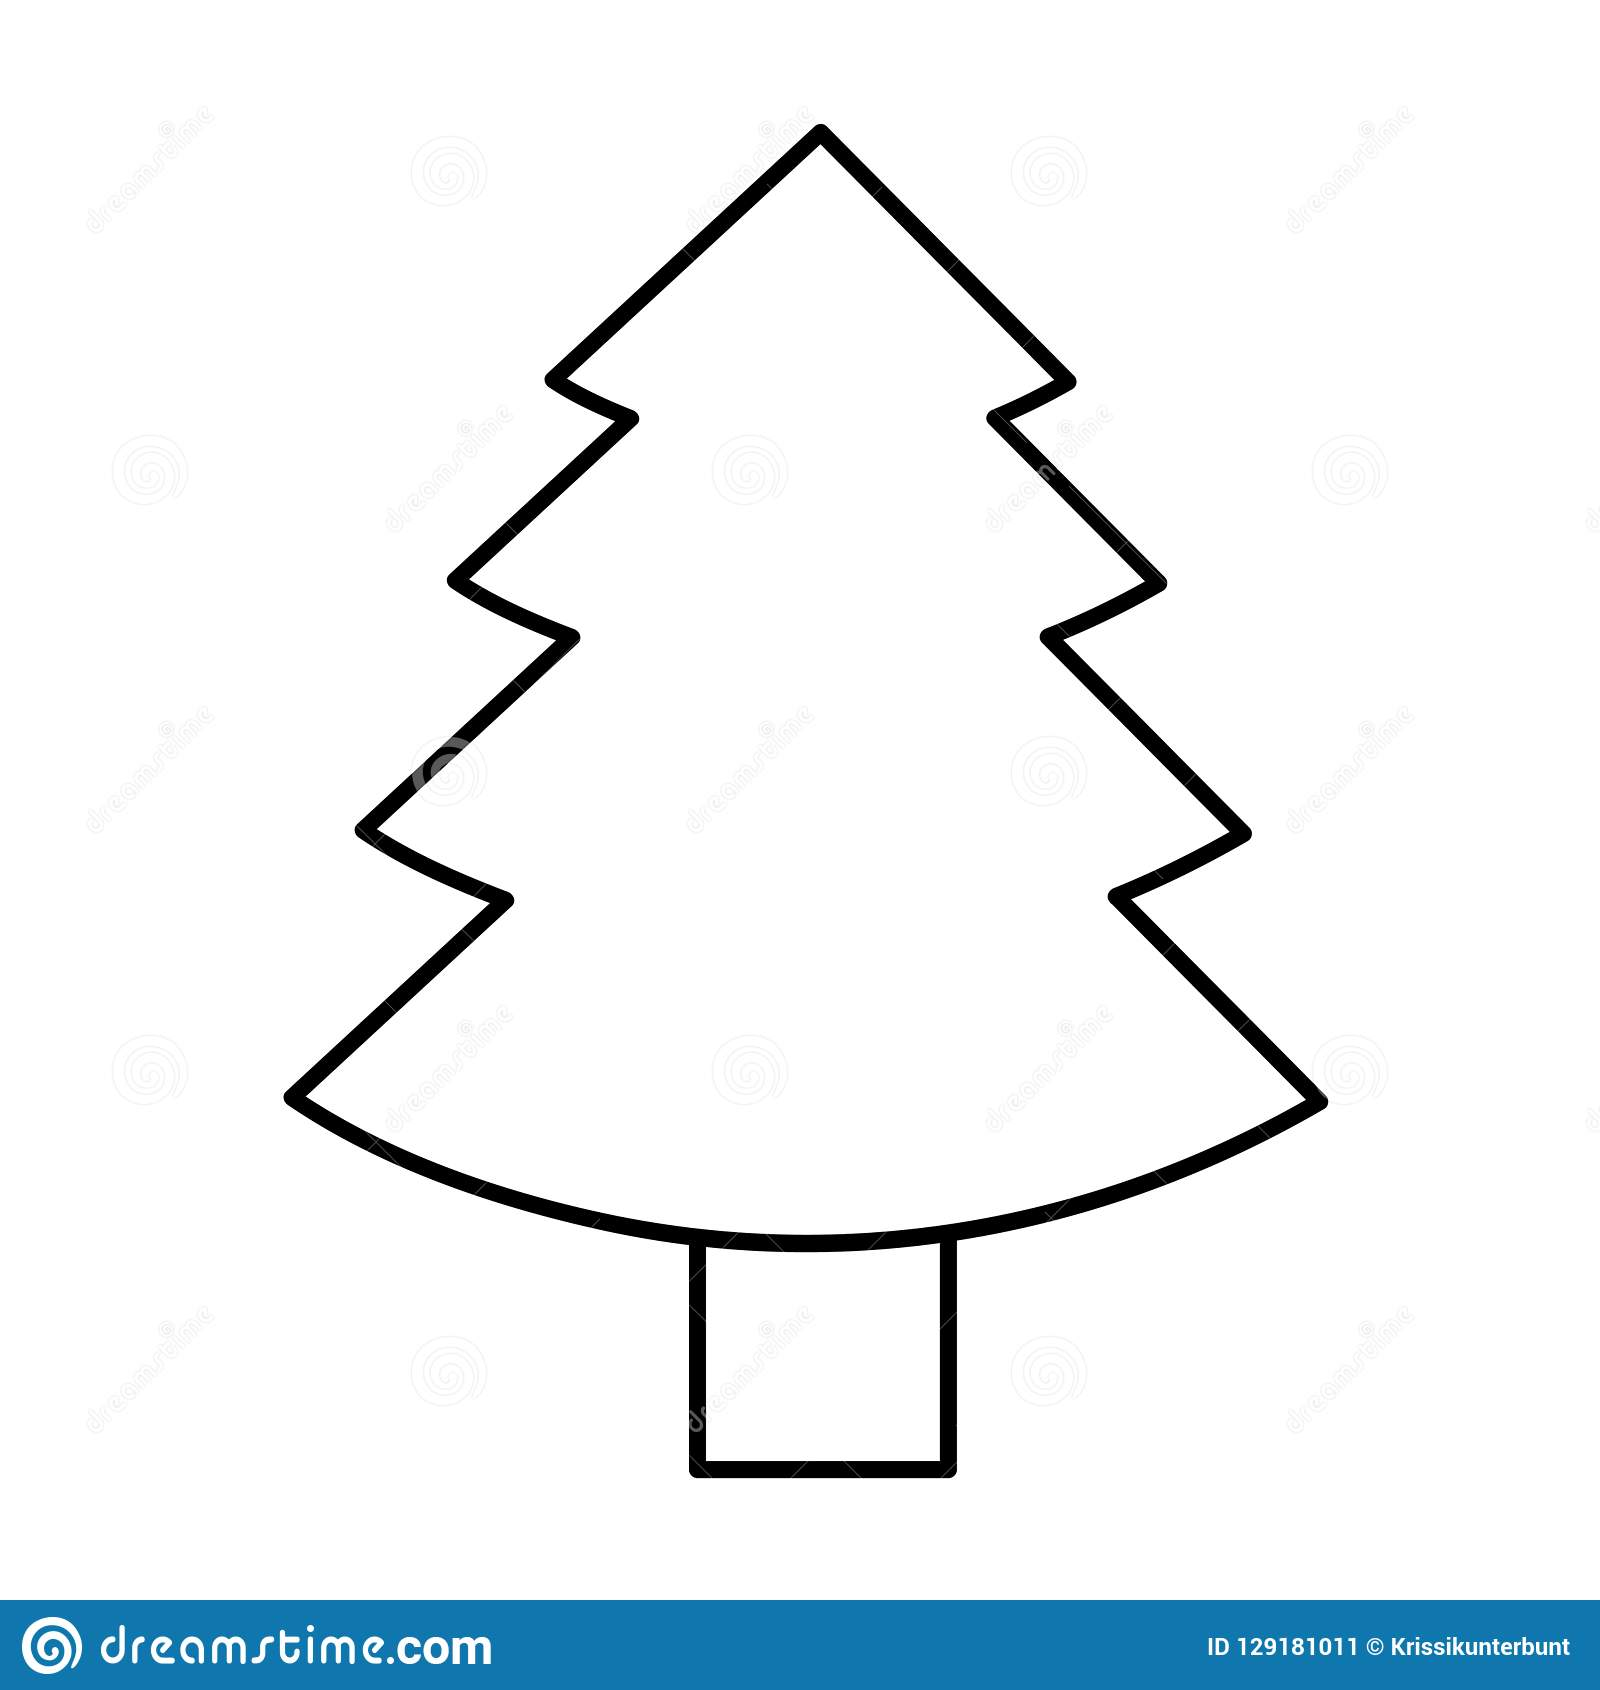 Christmas Tree Outline.Christmas Tree Fir Simple Icon Pictogram Outline Stock